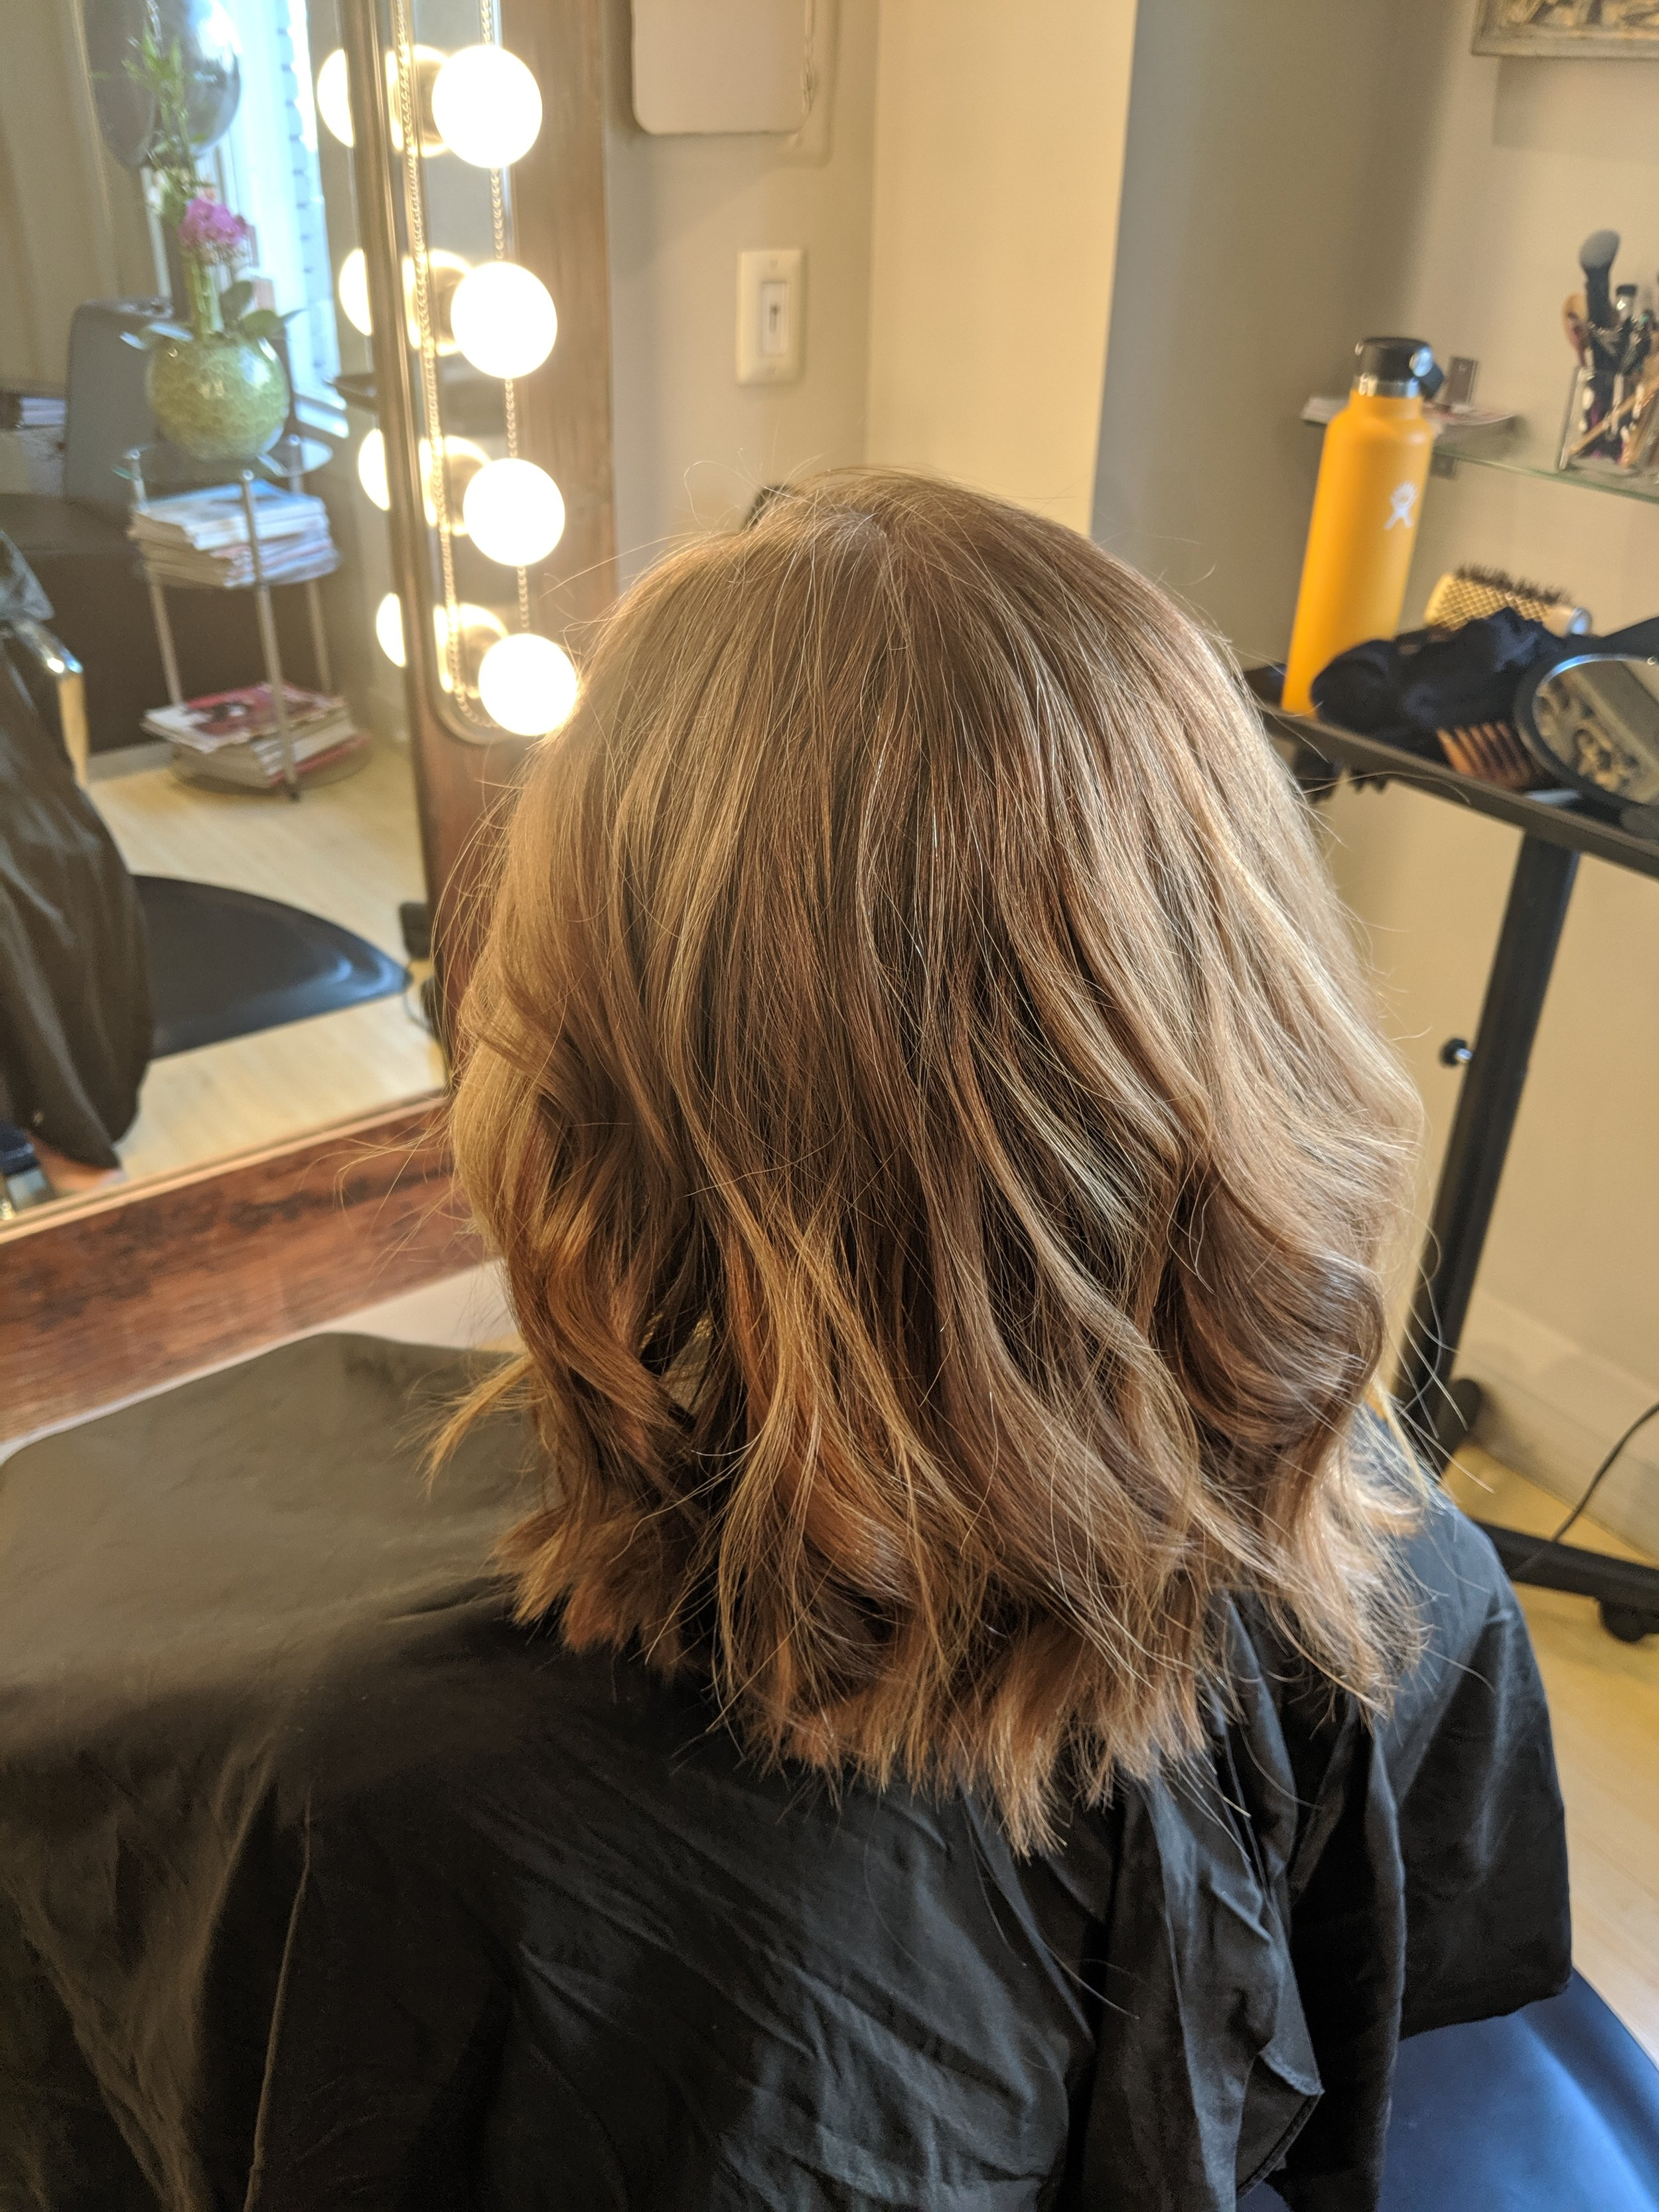 Haircut/Color/Style